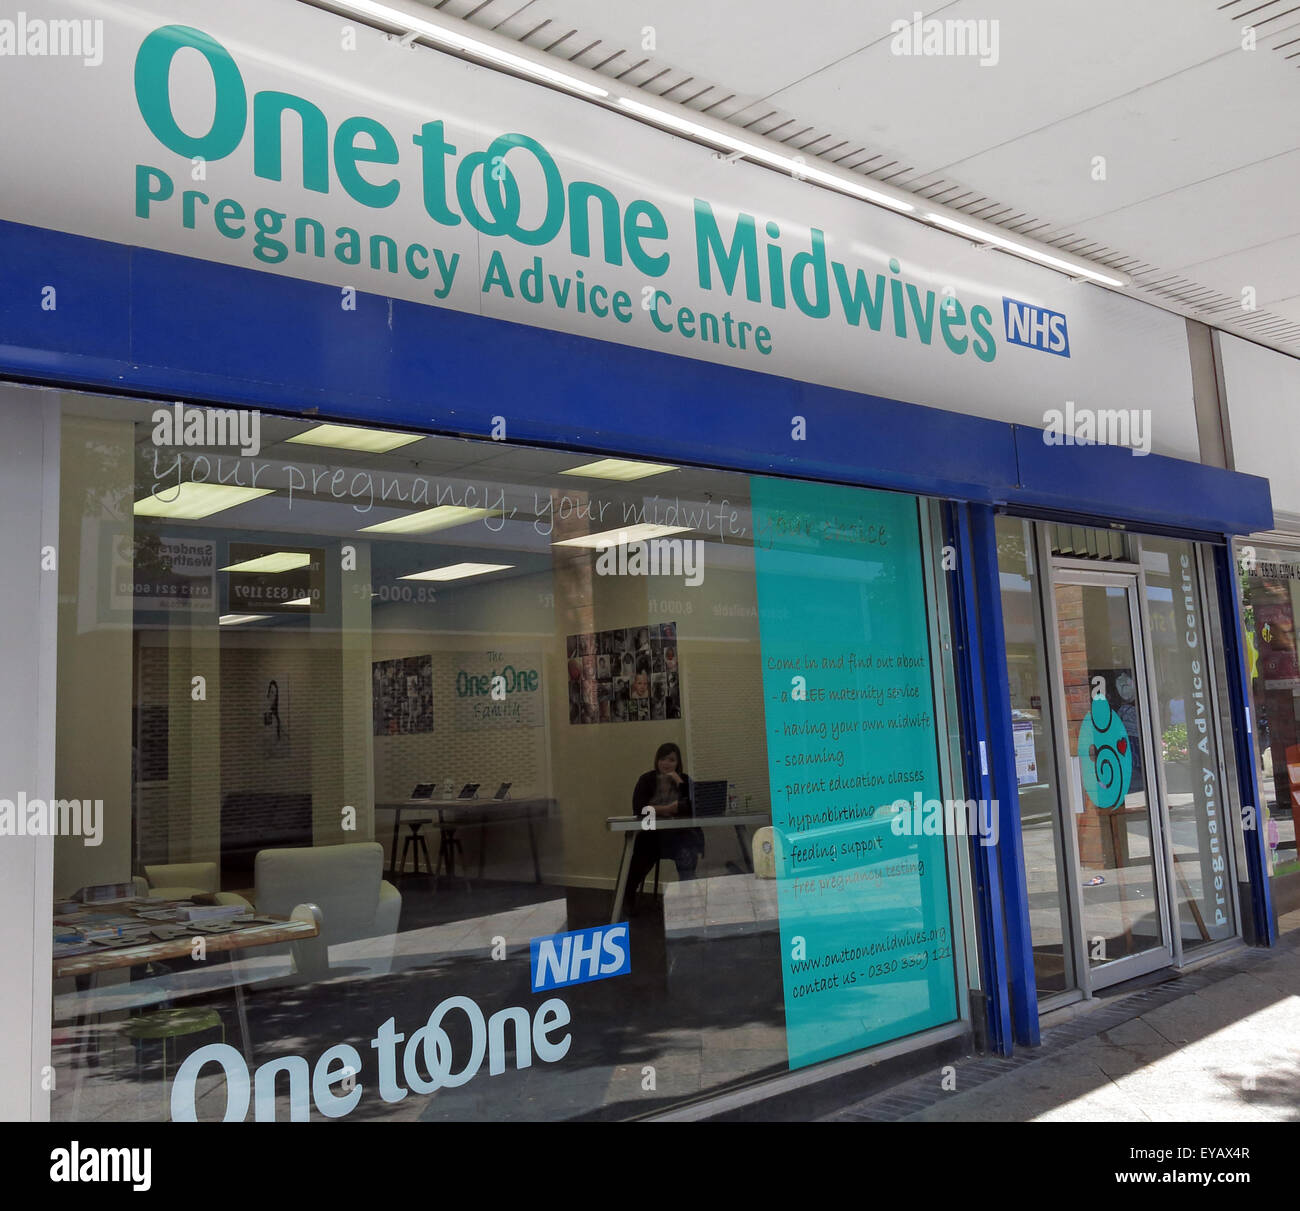 One To One Midwives Pregnancy Advice Centre,Warrington, Sankey St, Cheshire, England, UK - Stock Image